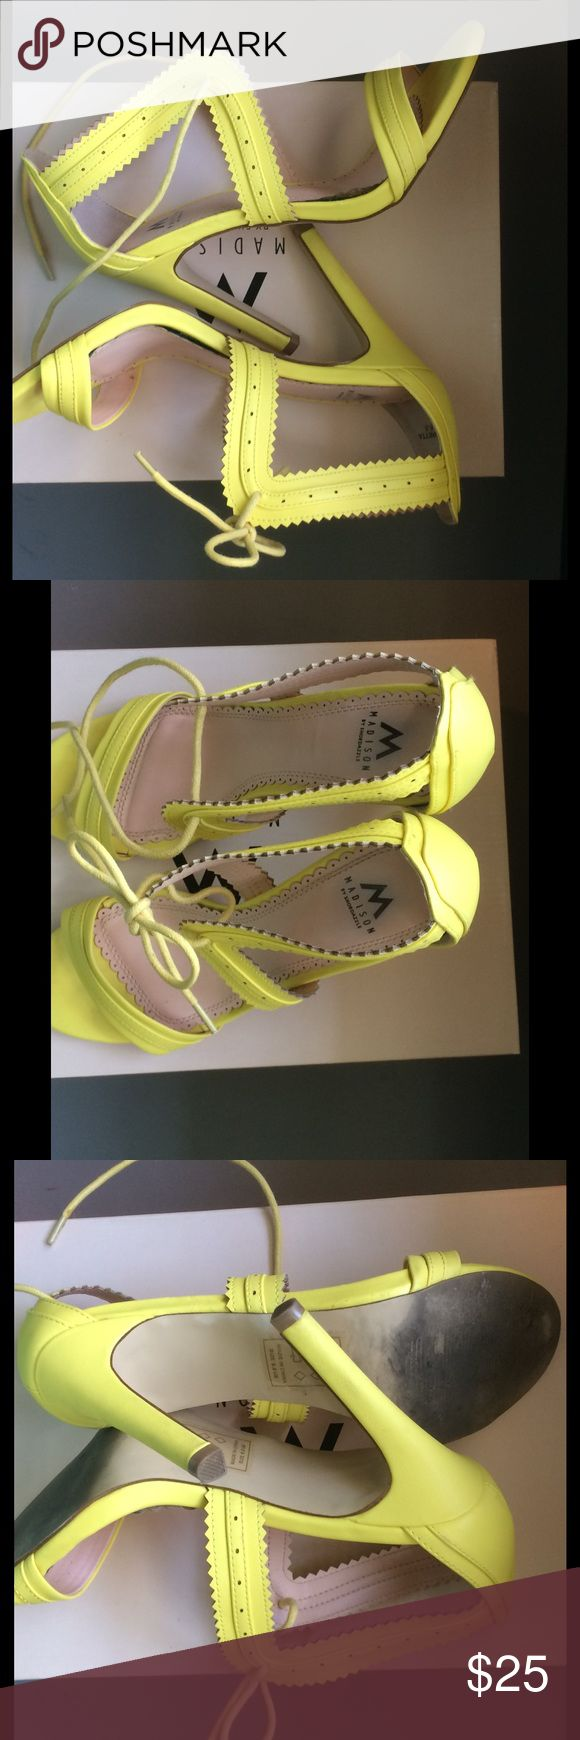 "Shoe Dazzle - Great bright yellow heels with laces Shoe Dazzle - Great, sexy, bright yellow heels with shoe laces. Heel height 4 1/2"". Will accept reasonable offers. Shoe Dazzle Shoes Heels"